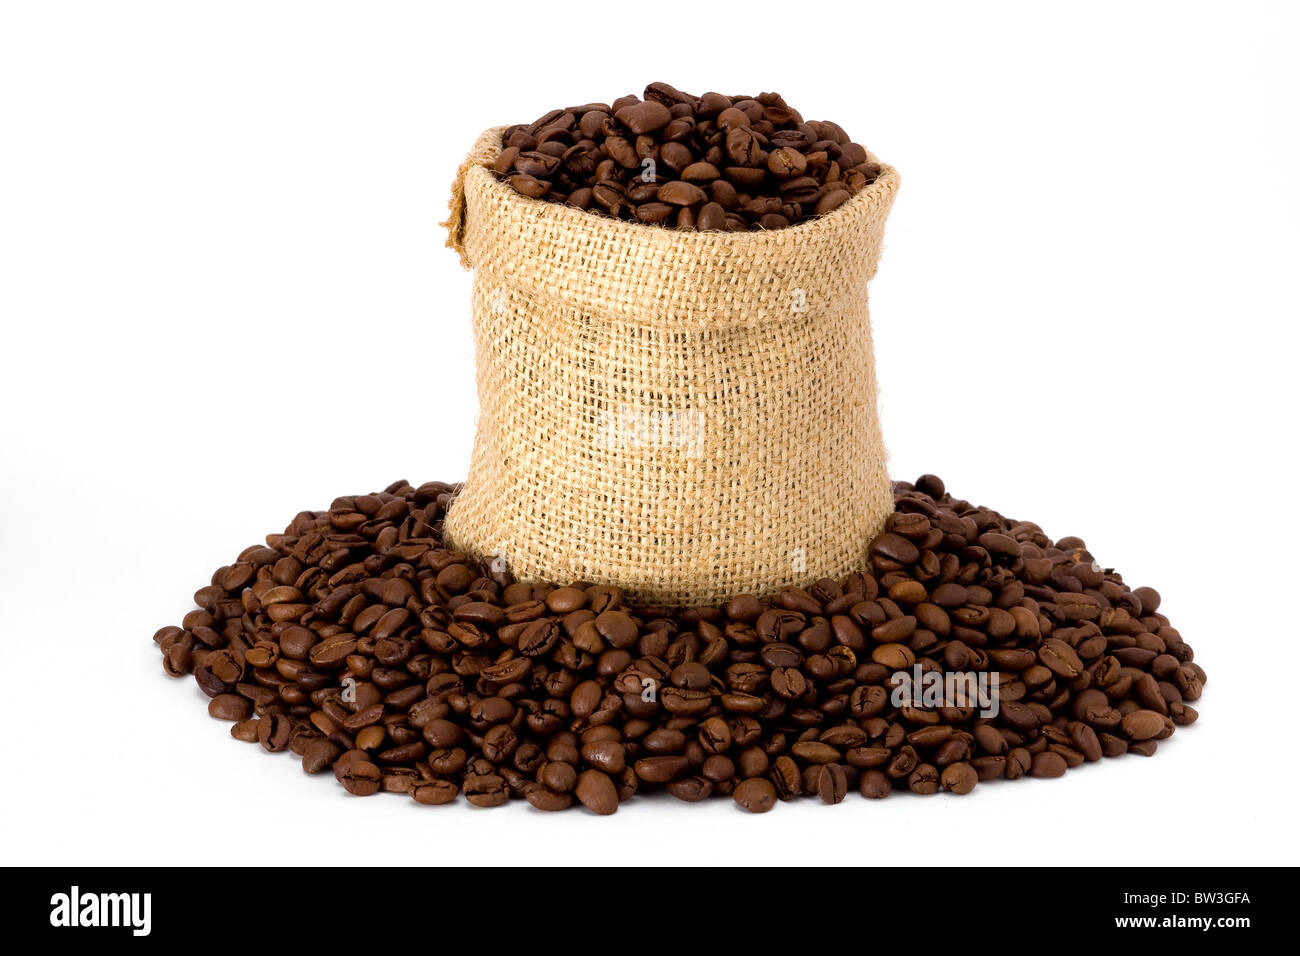 Coffee beans in burlap sack - Stock Image